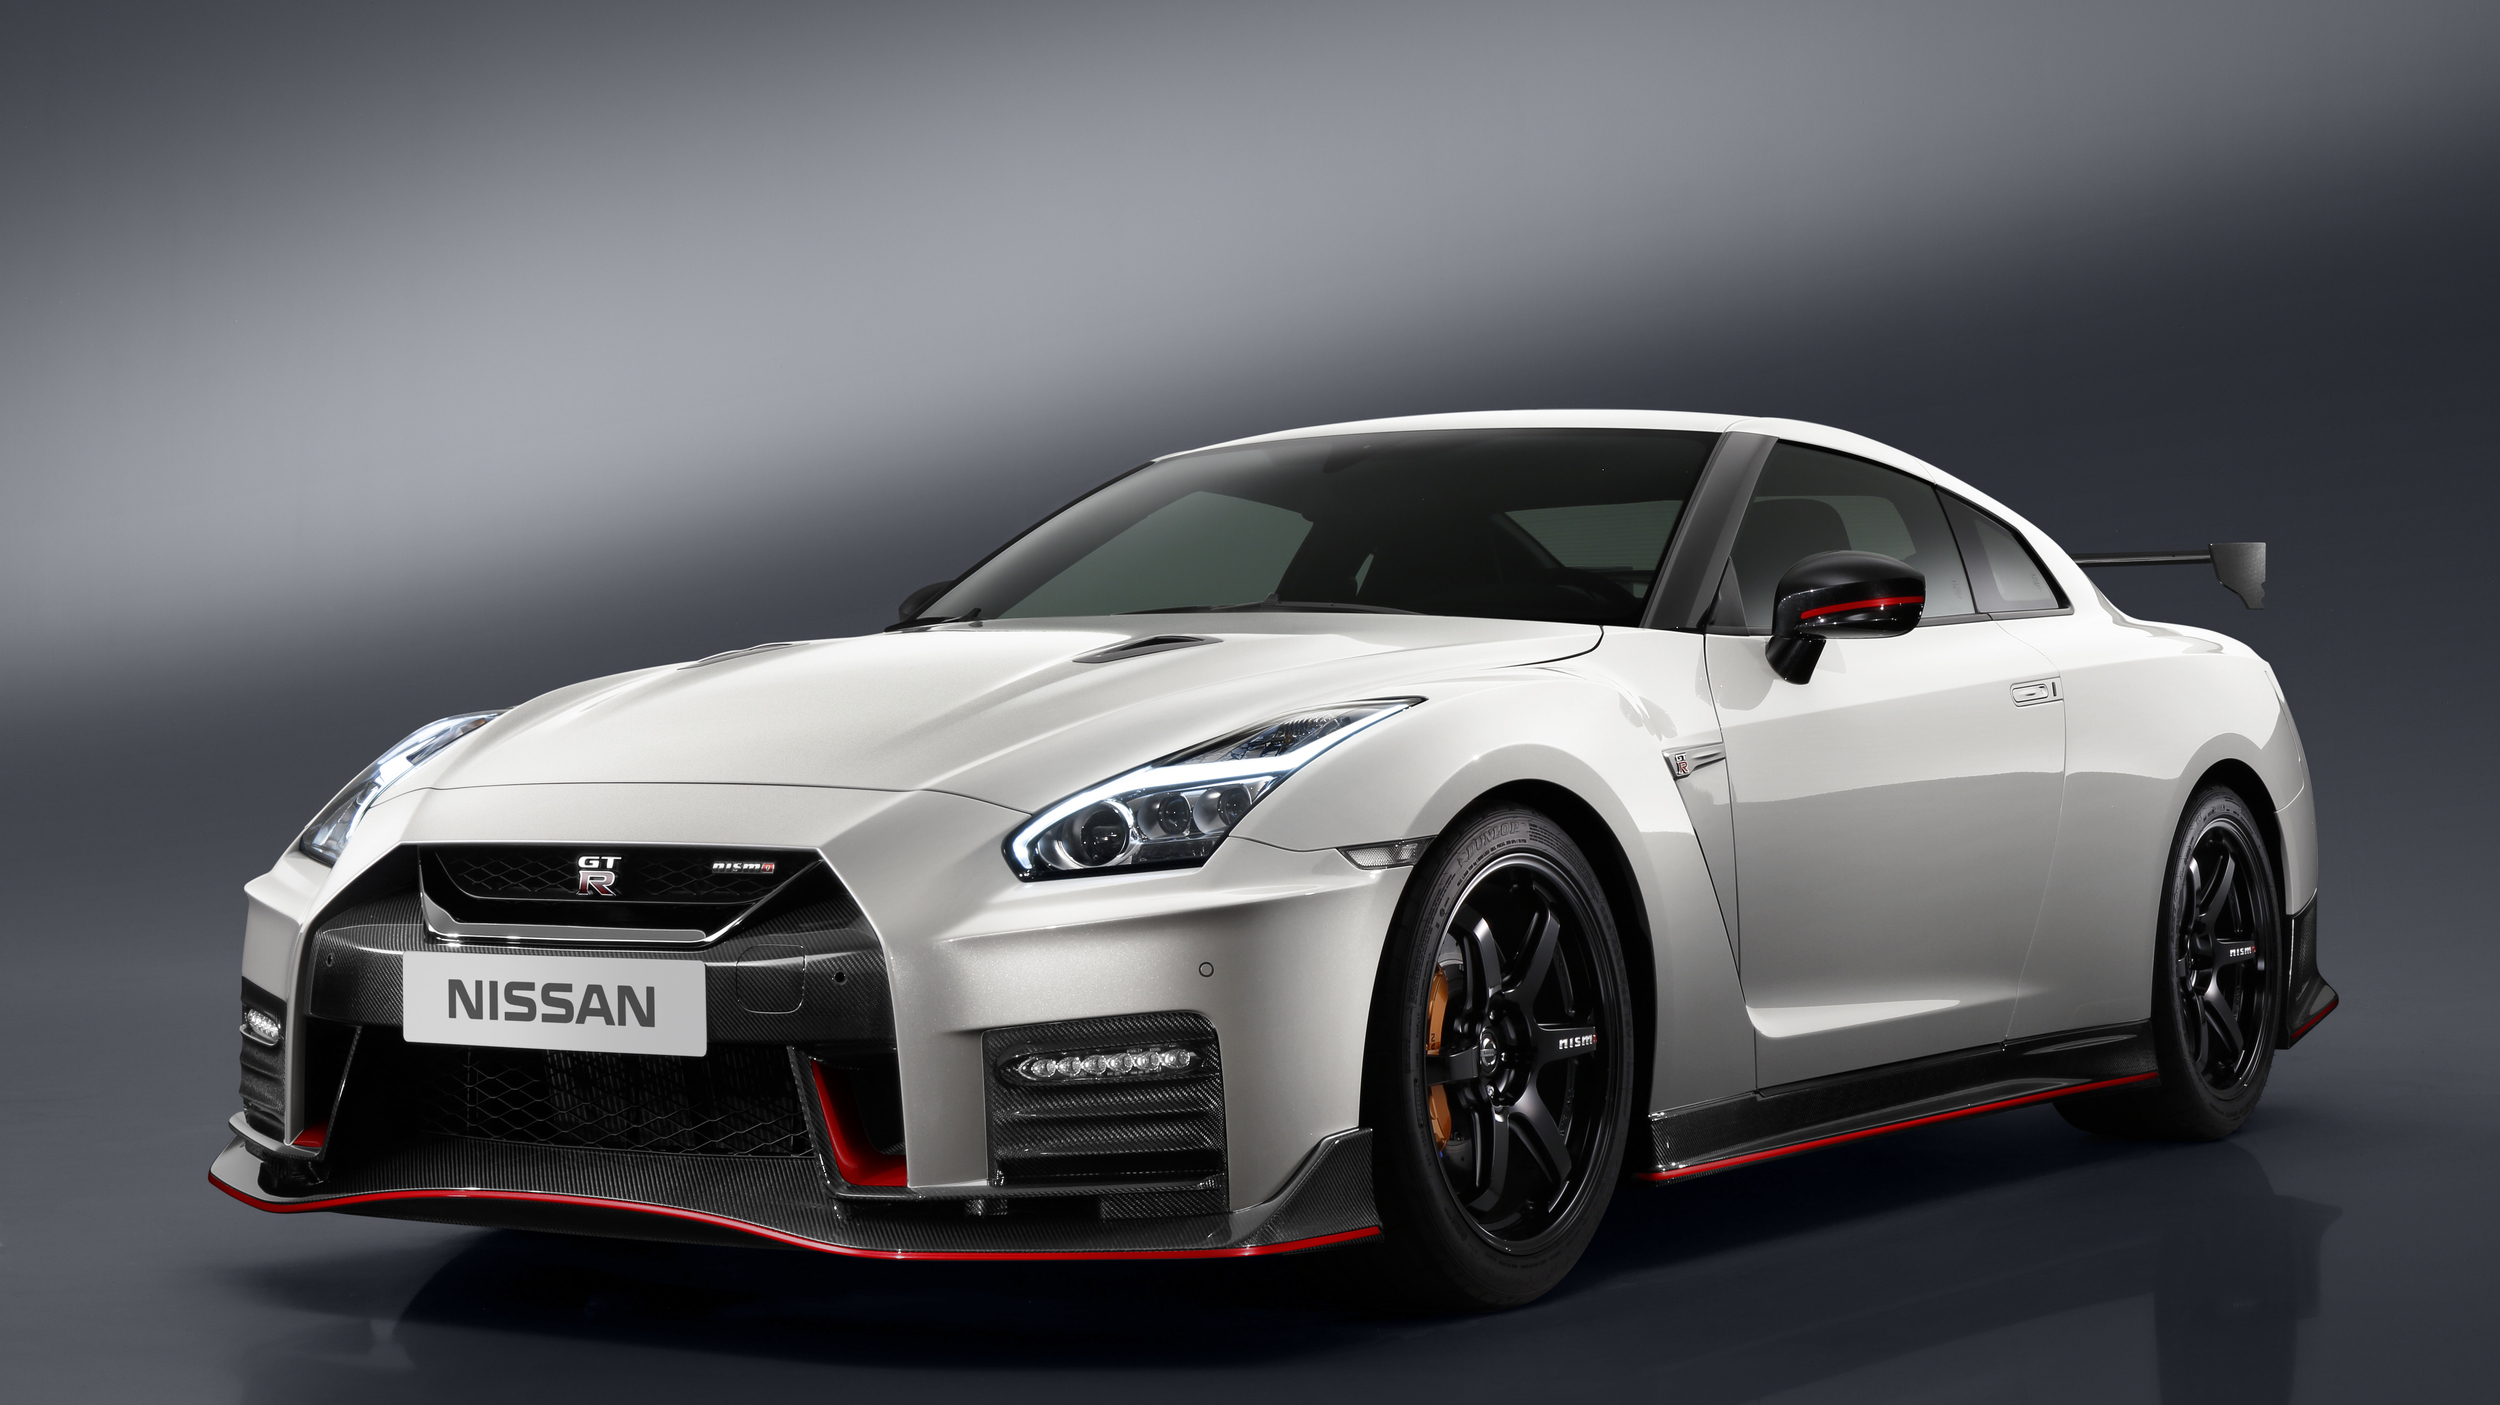 2017 Nissan Gt R Nismo Costs 176 585 Over 100 000 More